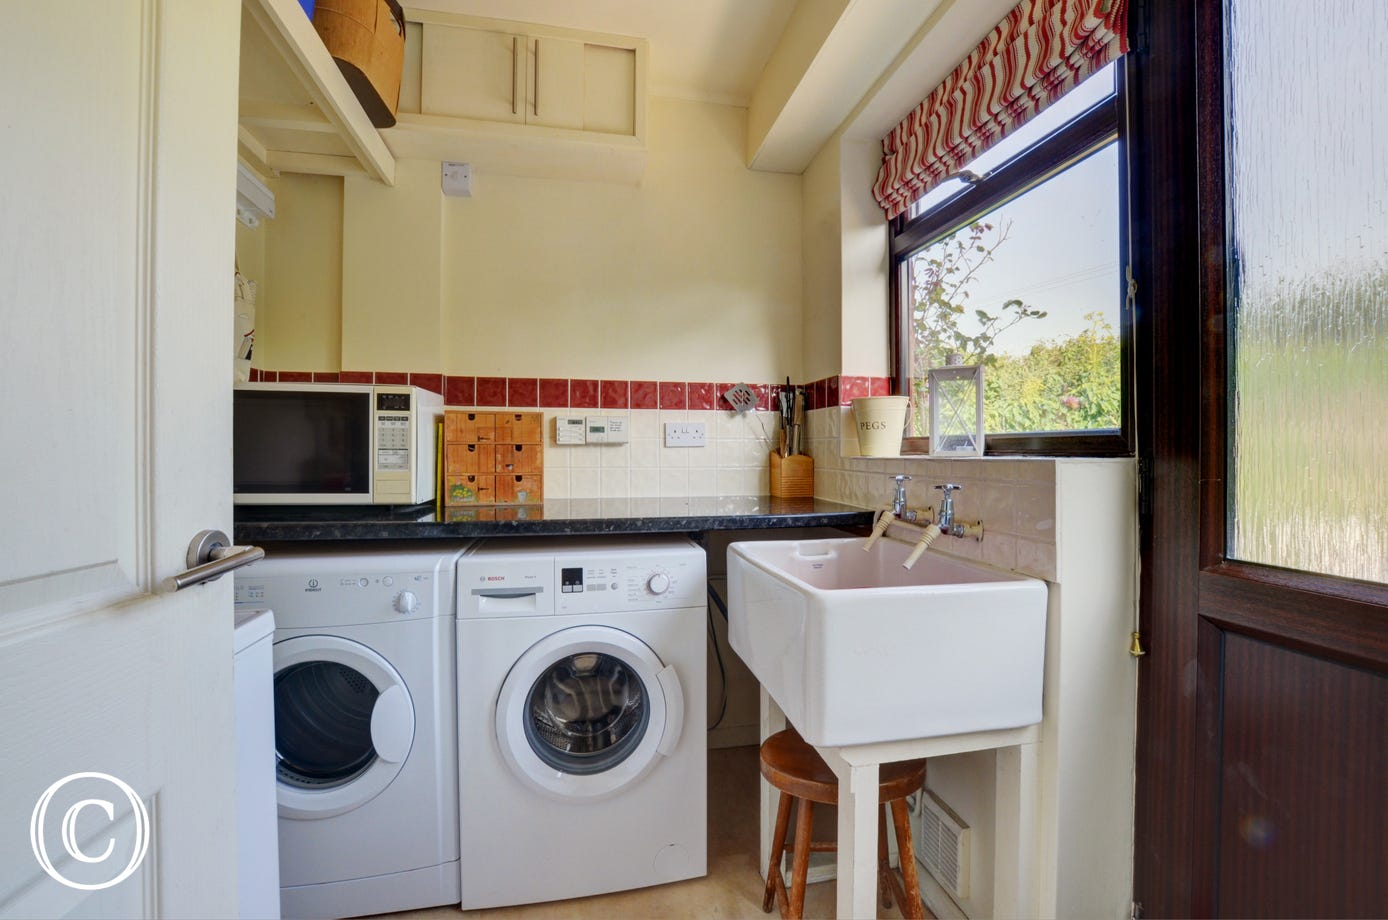 Utility room with washing machine, tumble dryer and sink